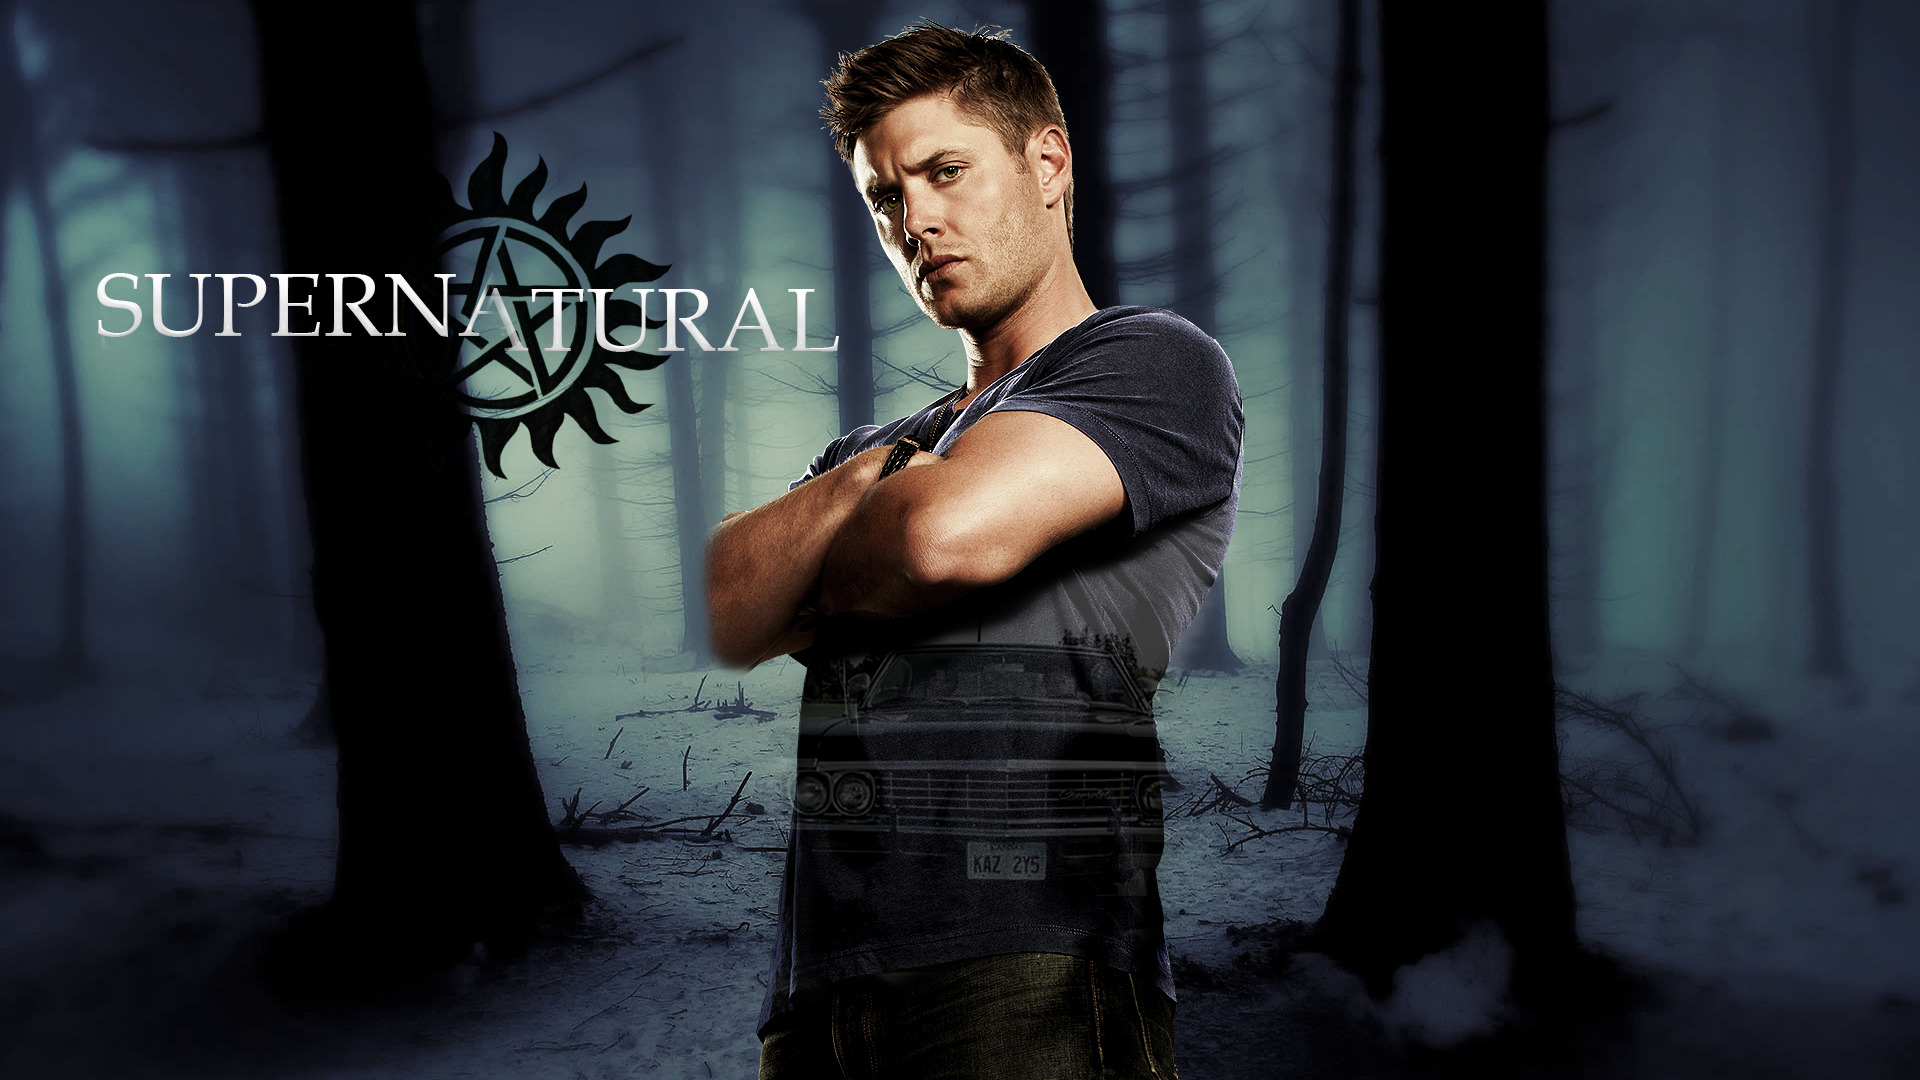 1920x1080 Supernatural Tv Series Laptop